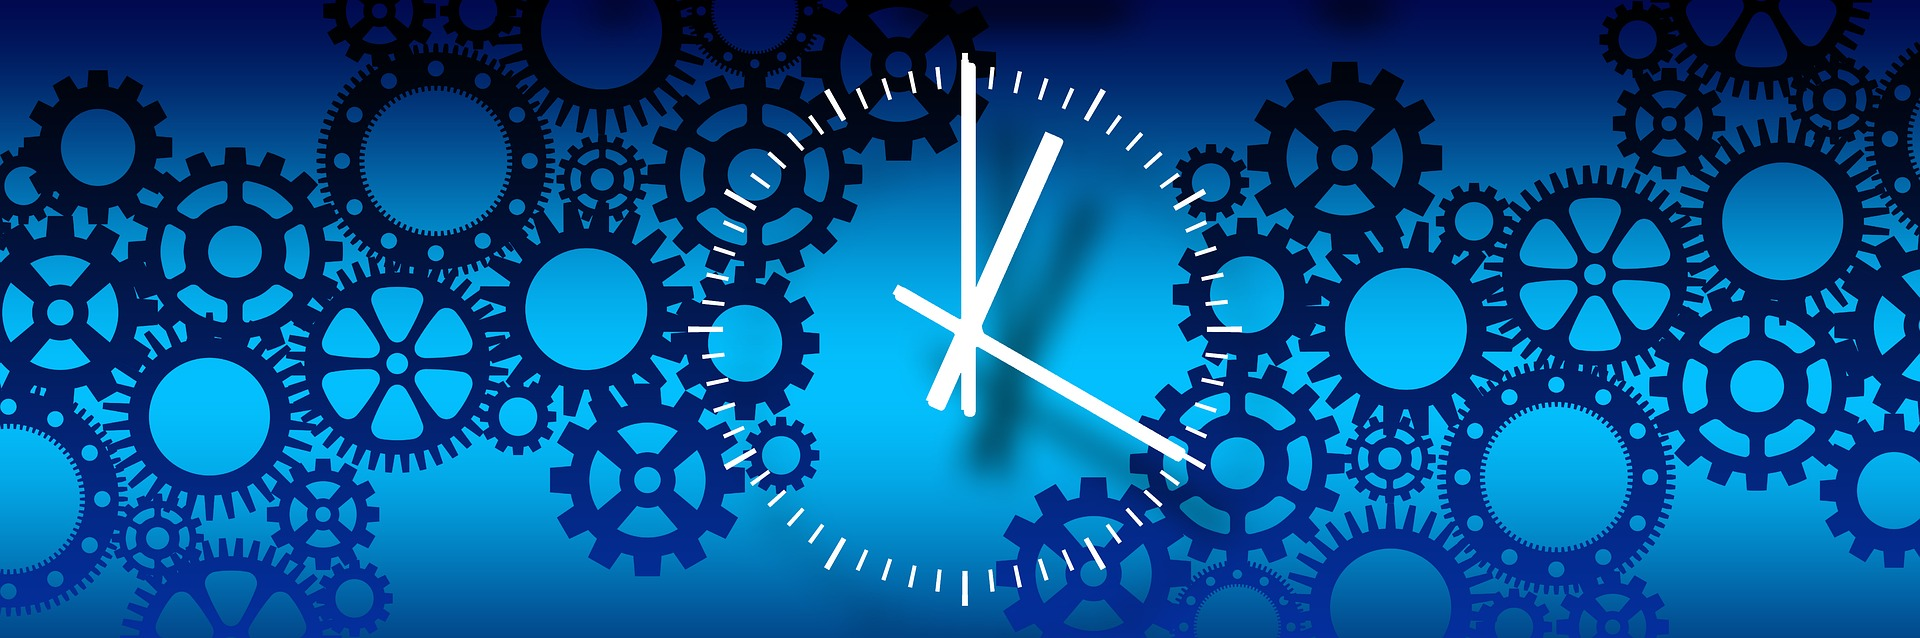 analog clock on blue image of gears